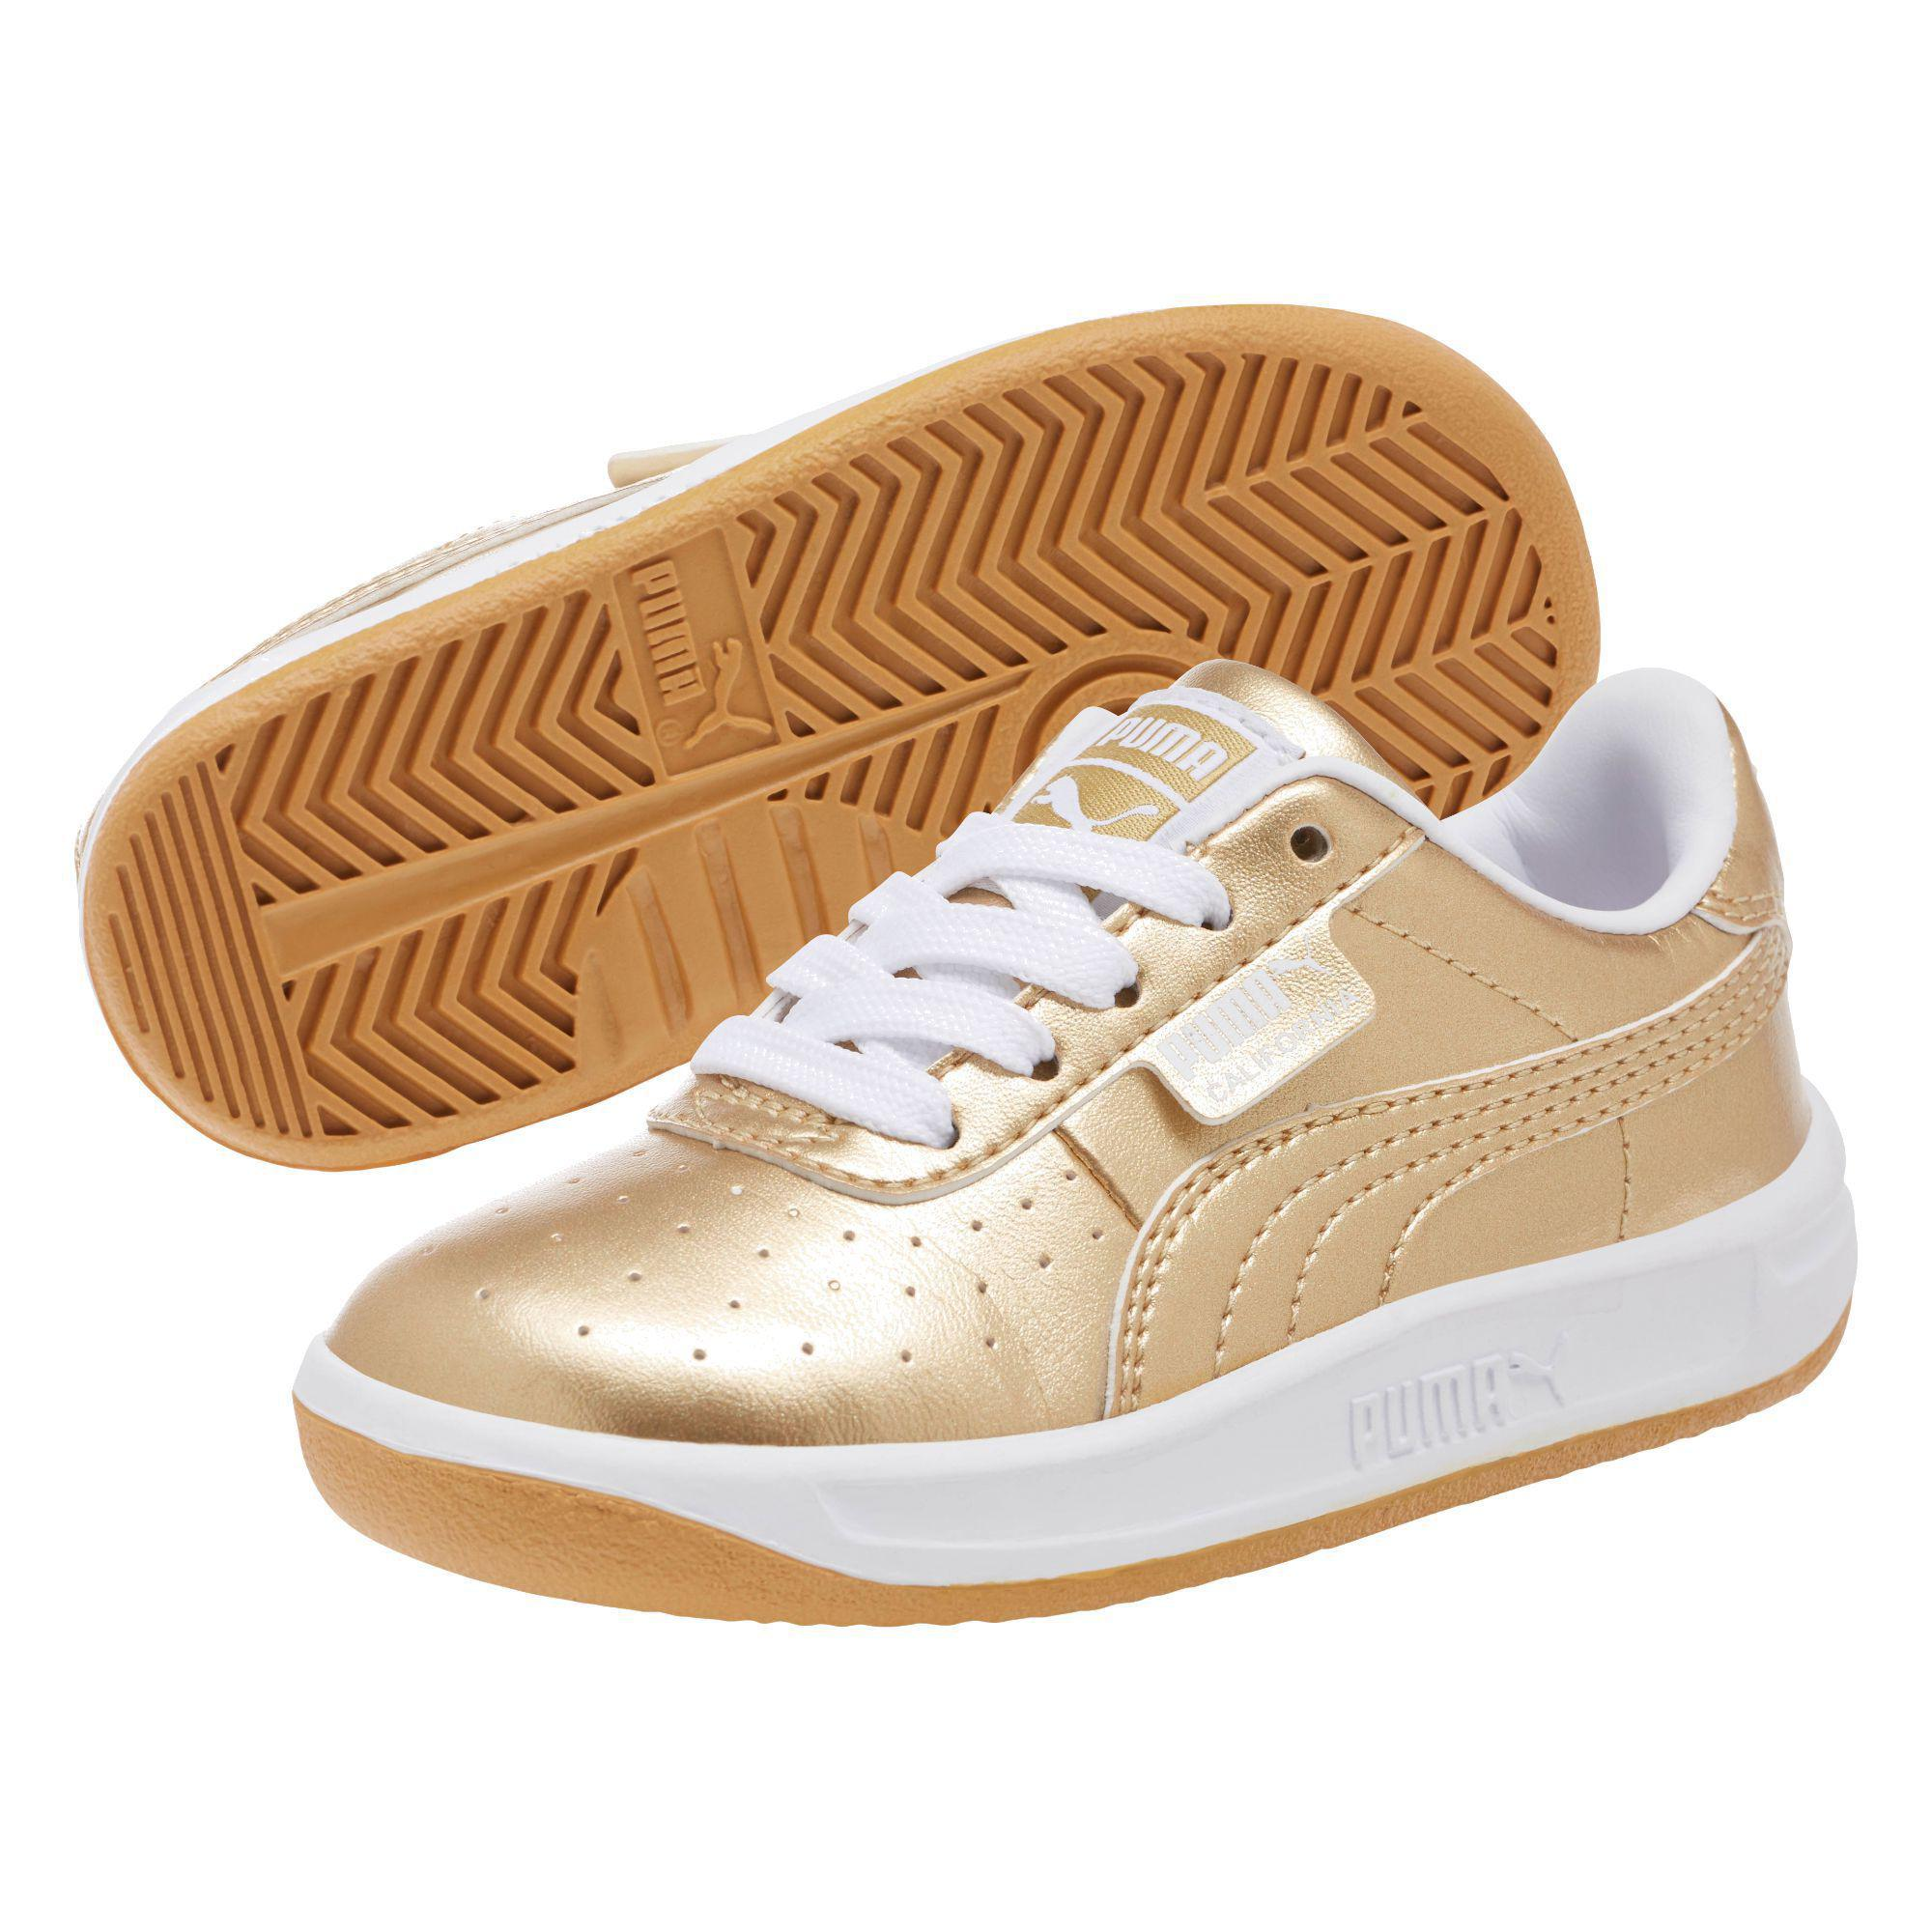 Infant Sneakers Puma California Metallic Infant Sneakers In Metallic Lyst